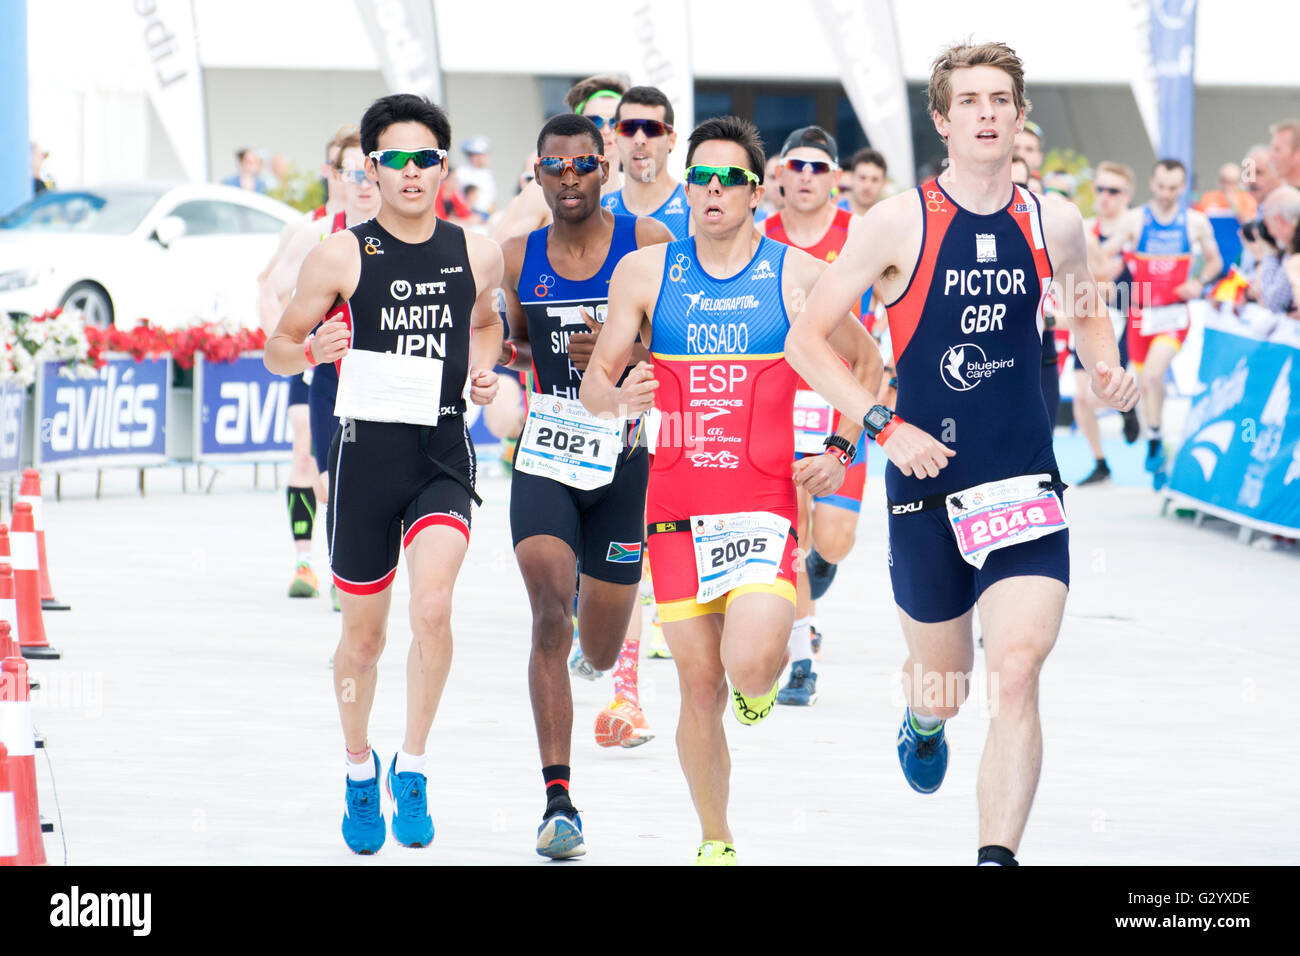 Aviles, Spain. 5th June, 2016. Athletes during the race of standar category of 2016 Aviles ITU Duathlon World Championships - Stock Image